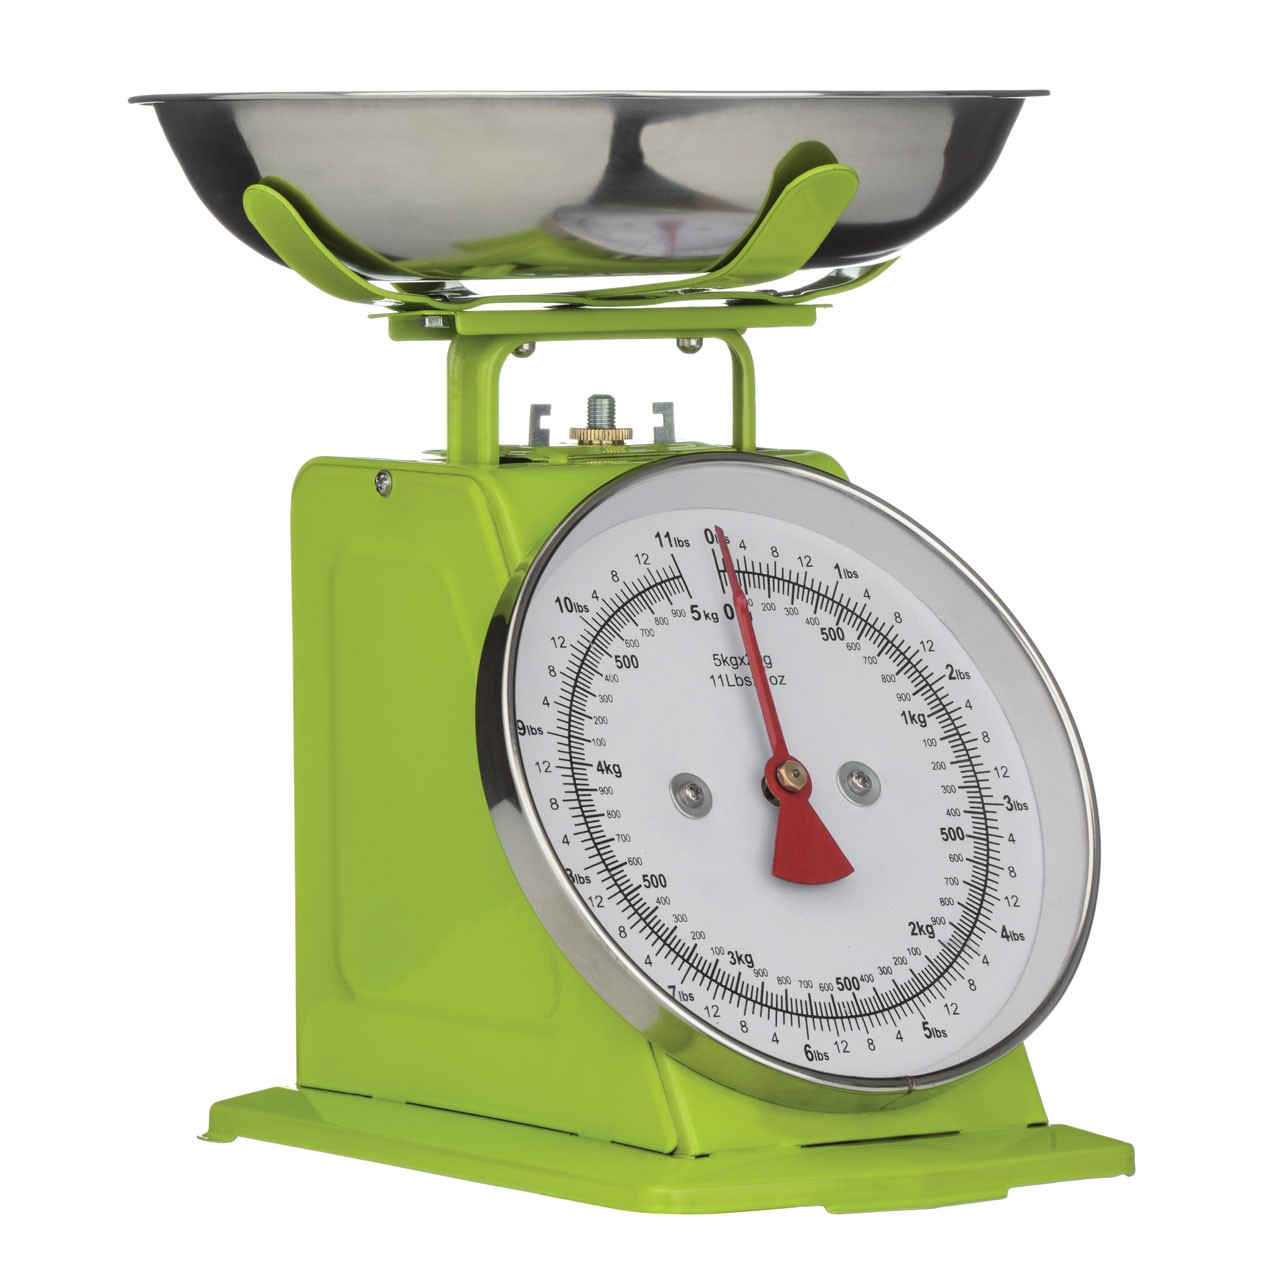 5 kg Retro Kitchen Scale - Lime Green